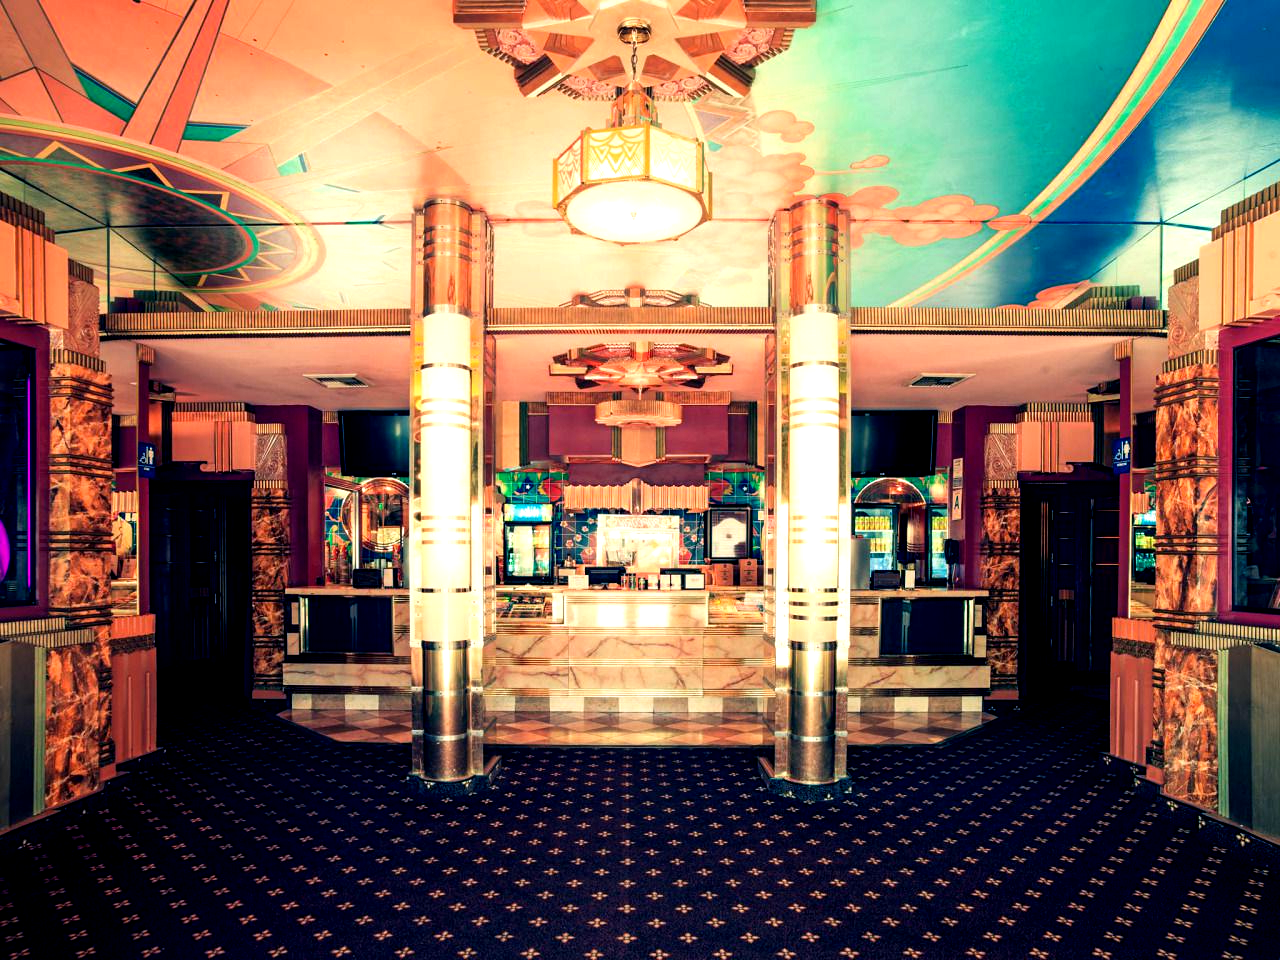 The Crest Theater Lobby Westwood Los Angeles California Franck Bohbot 2048 X 1536 In 2020 Westwood Los Angeles Los Angeles California California